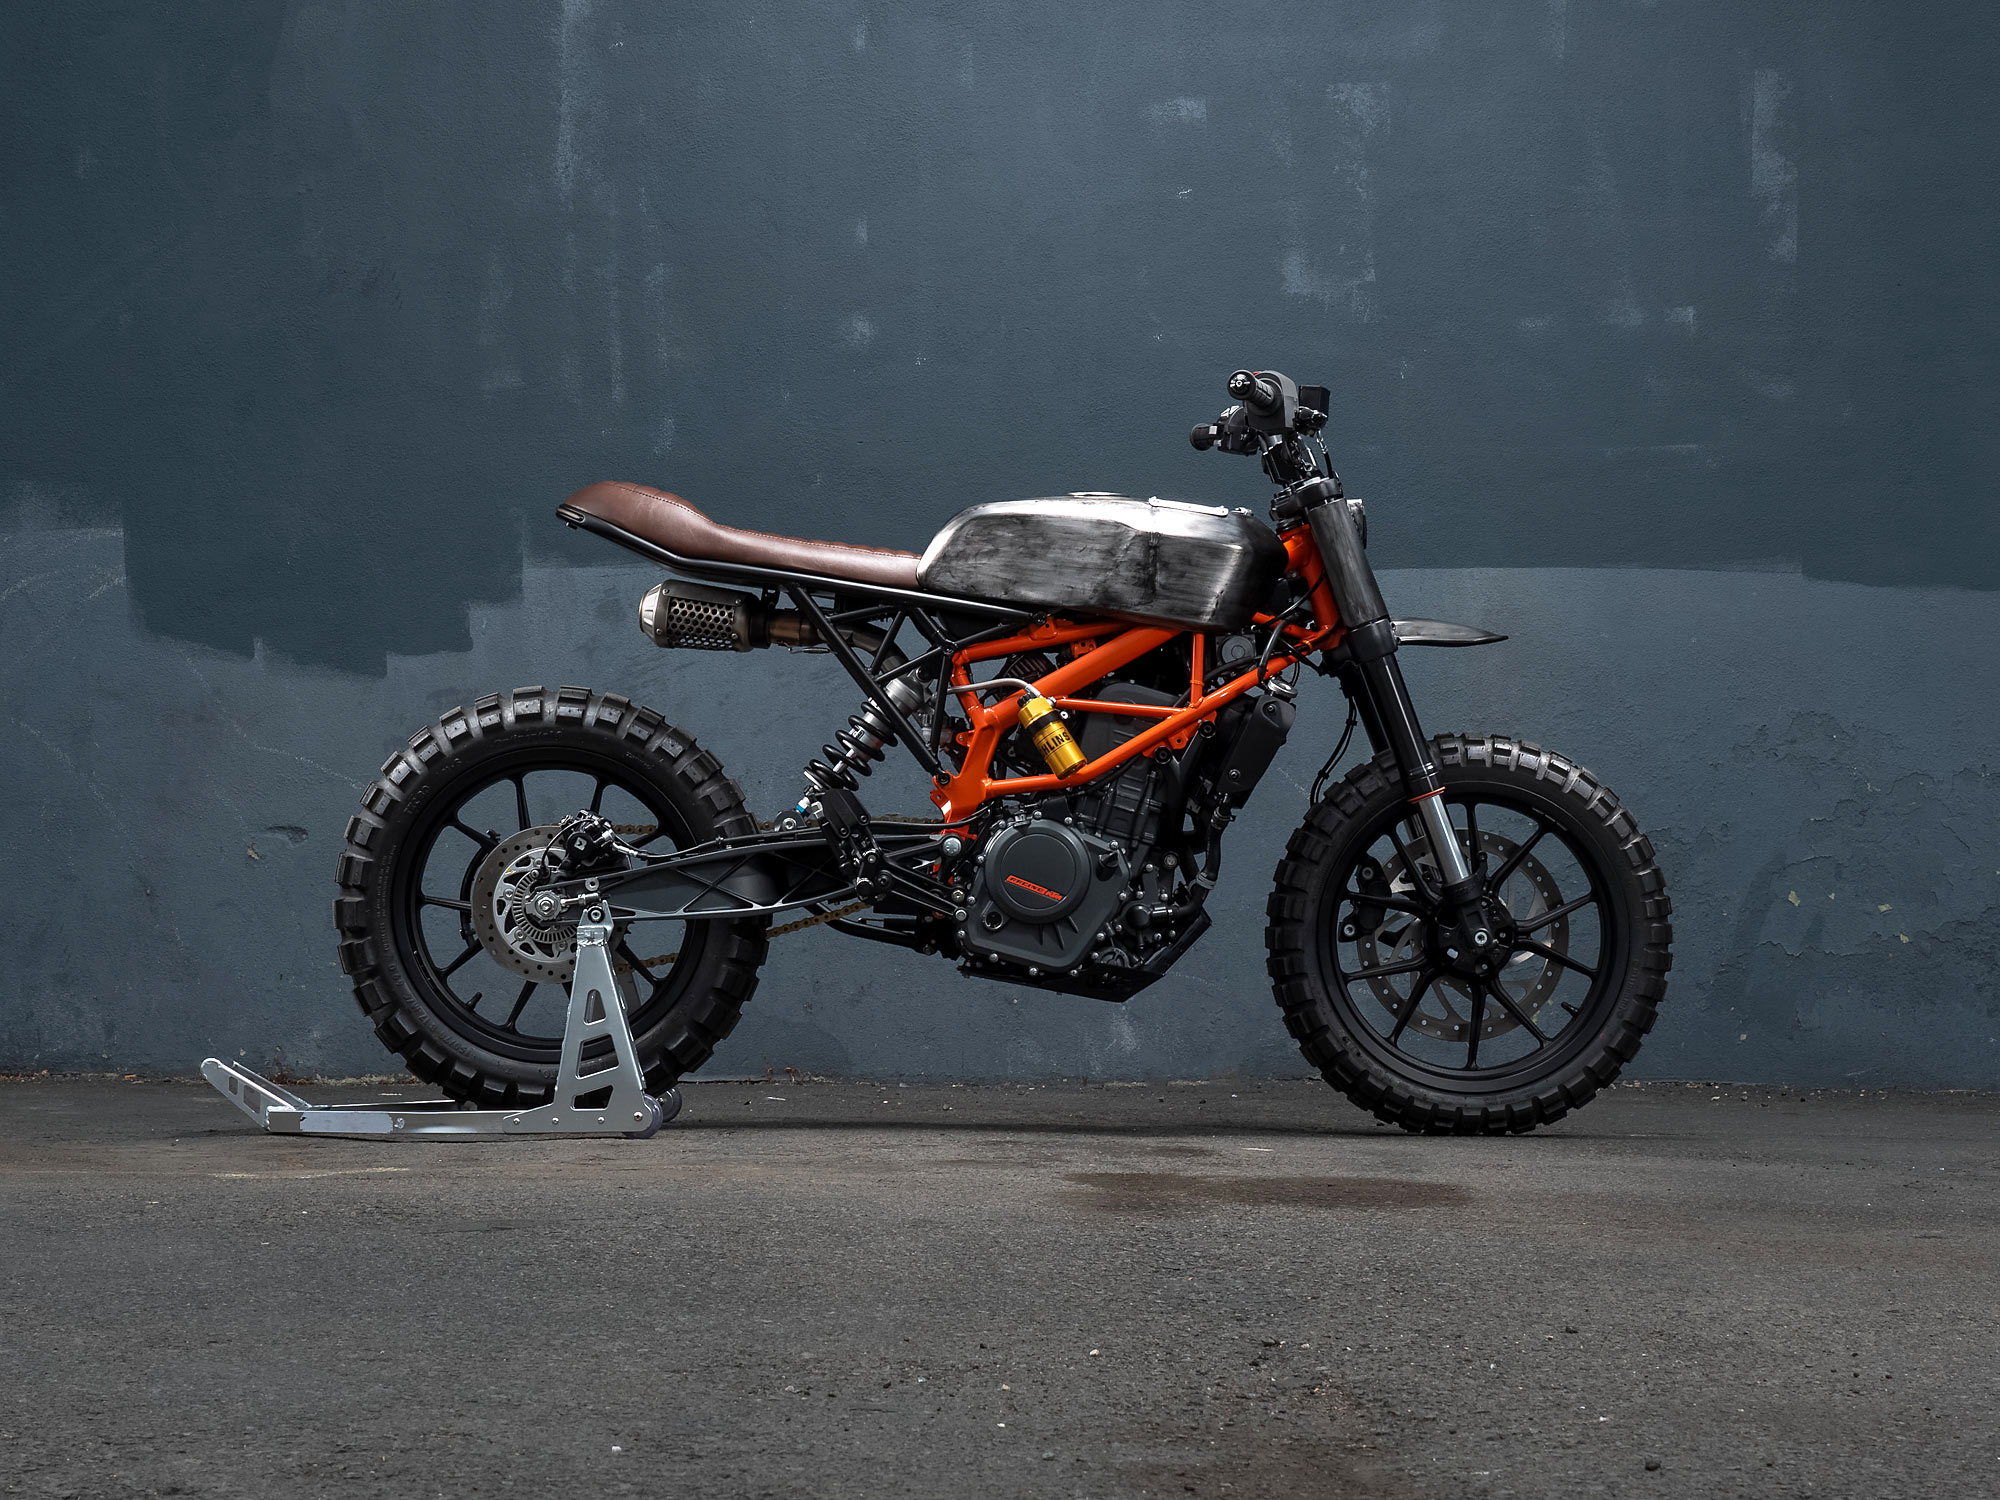 ngam-ktm-390-duke-scrambler-do-dam-chat-co-dien